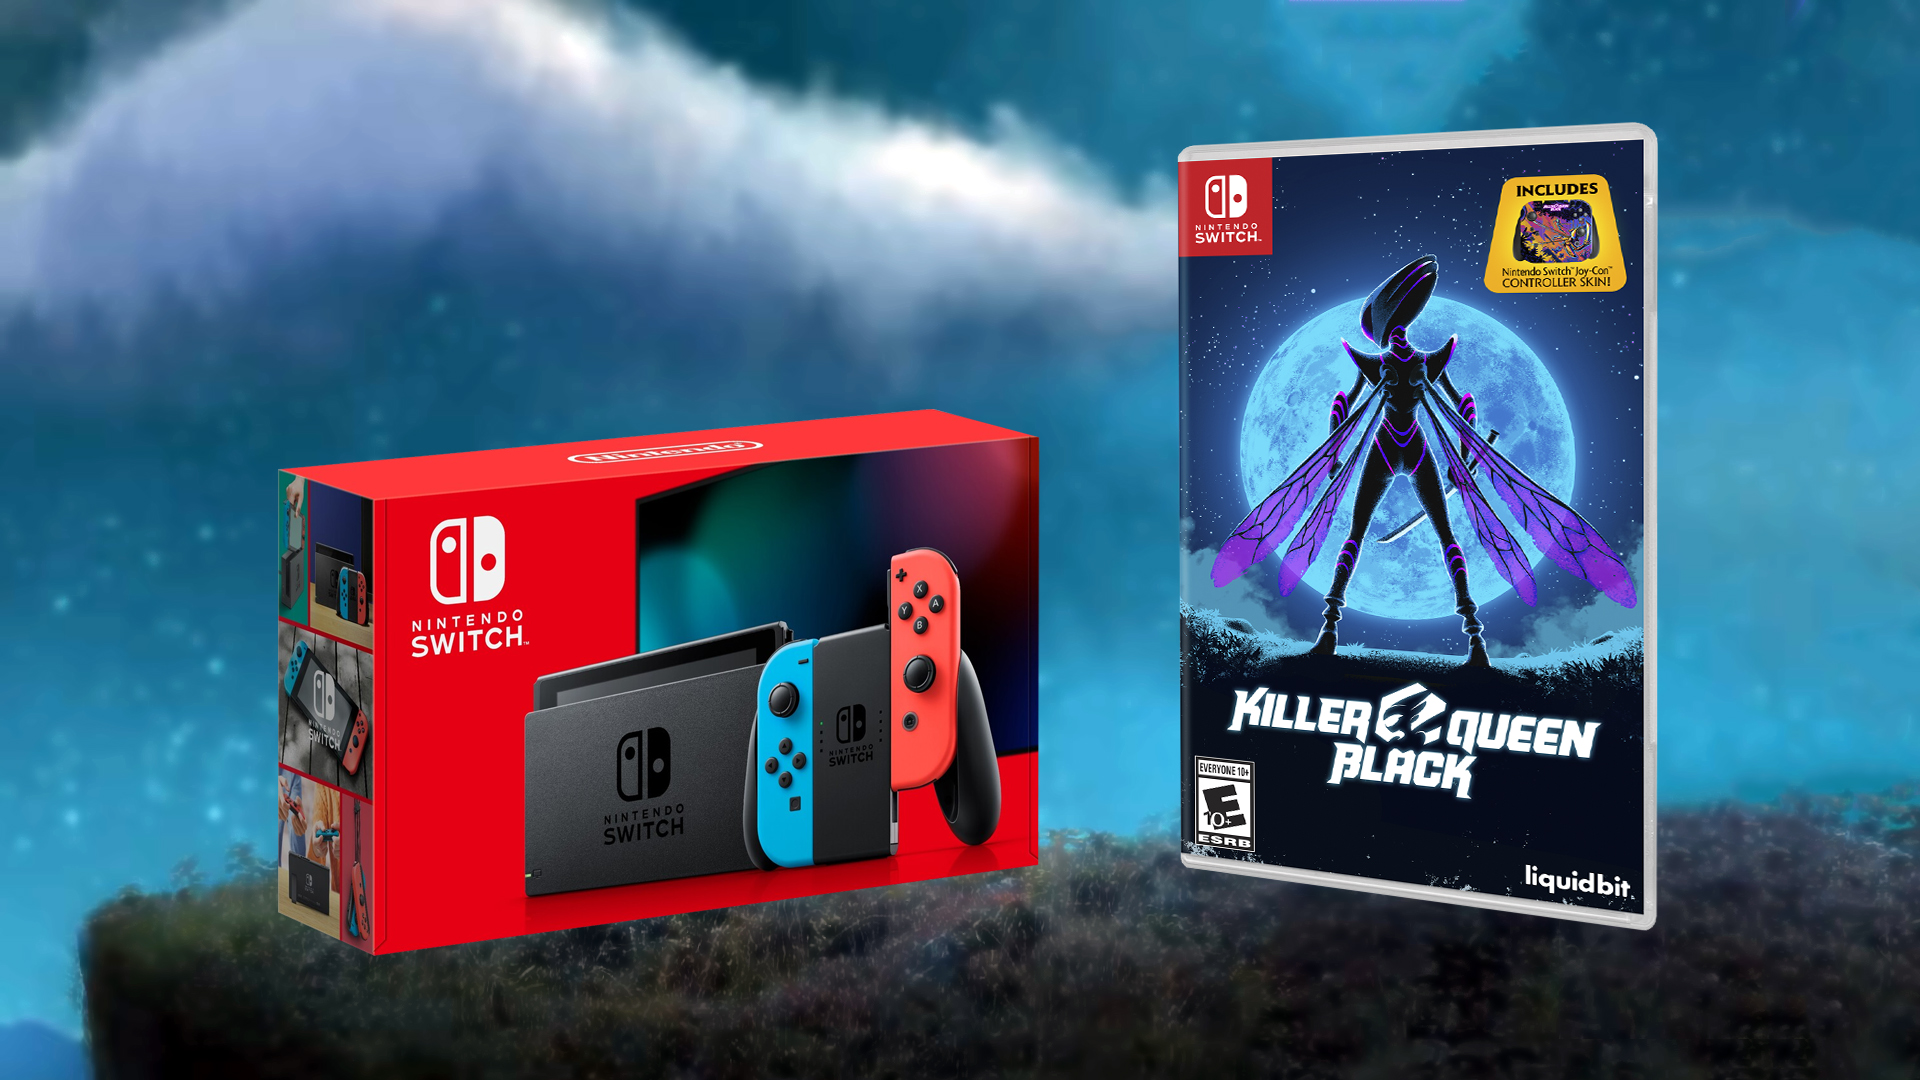 Contest: Win A Brand New Switch, Courtesy Of Killer Queen Black